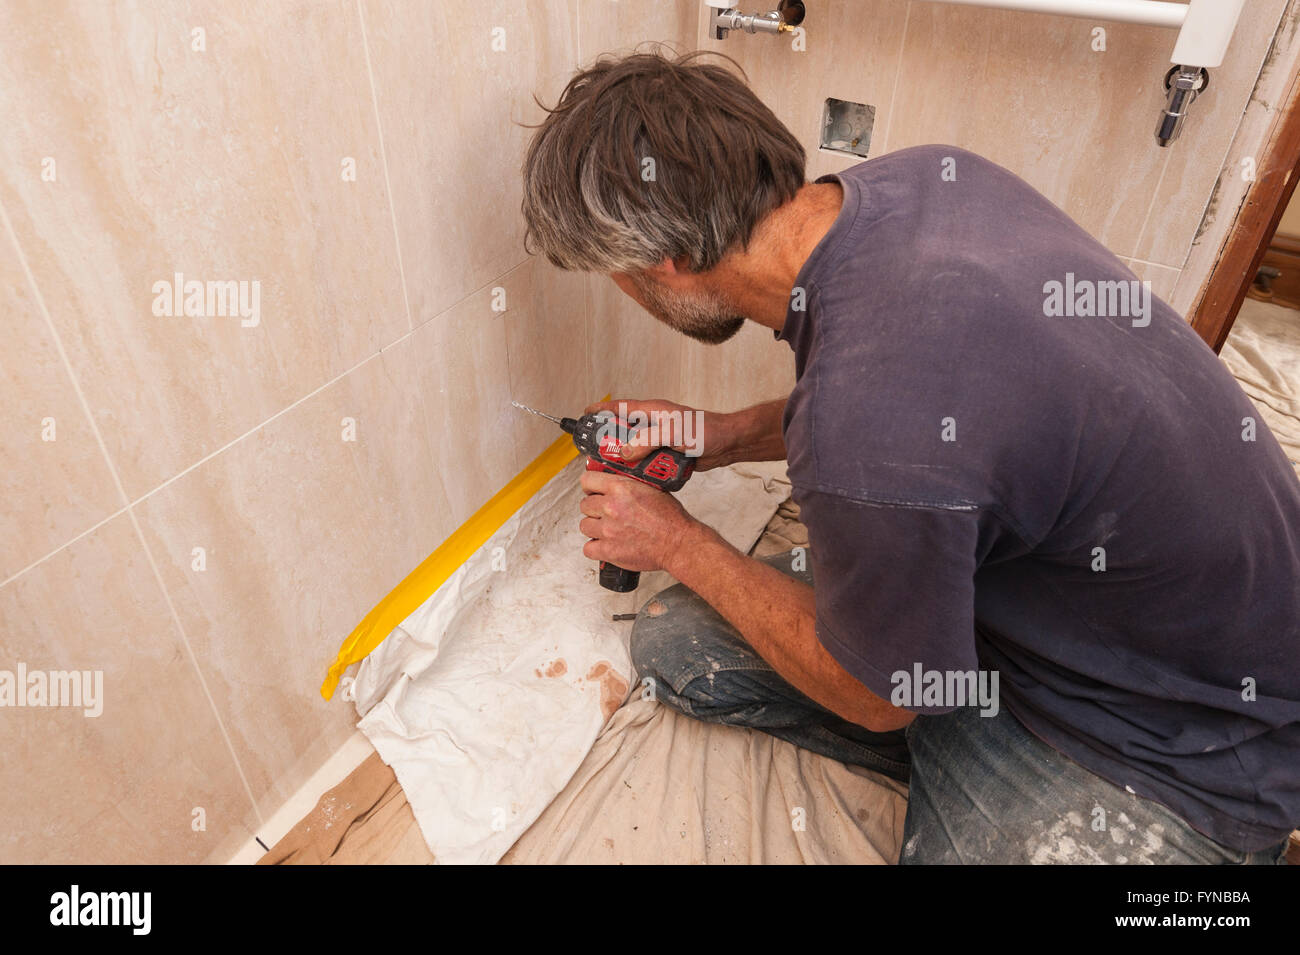 Best way to drill a hole in ceramic tile